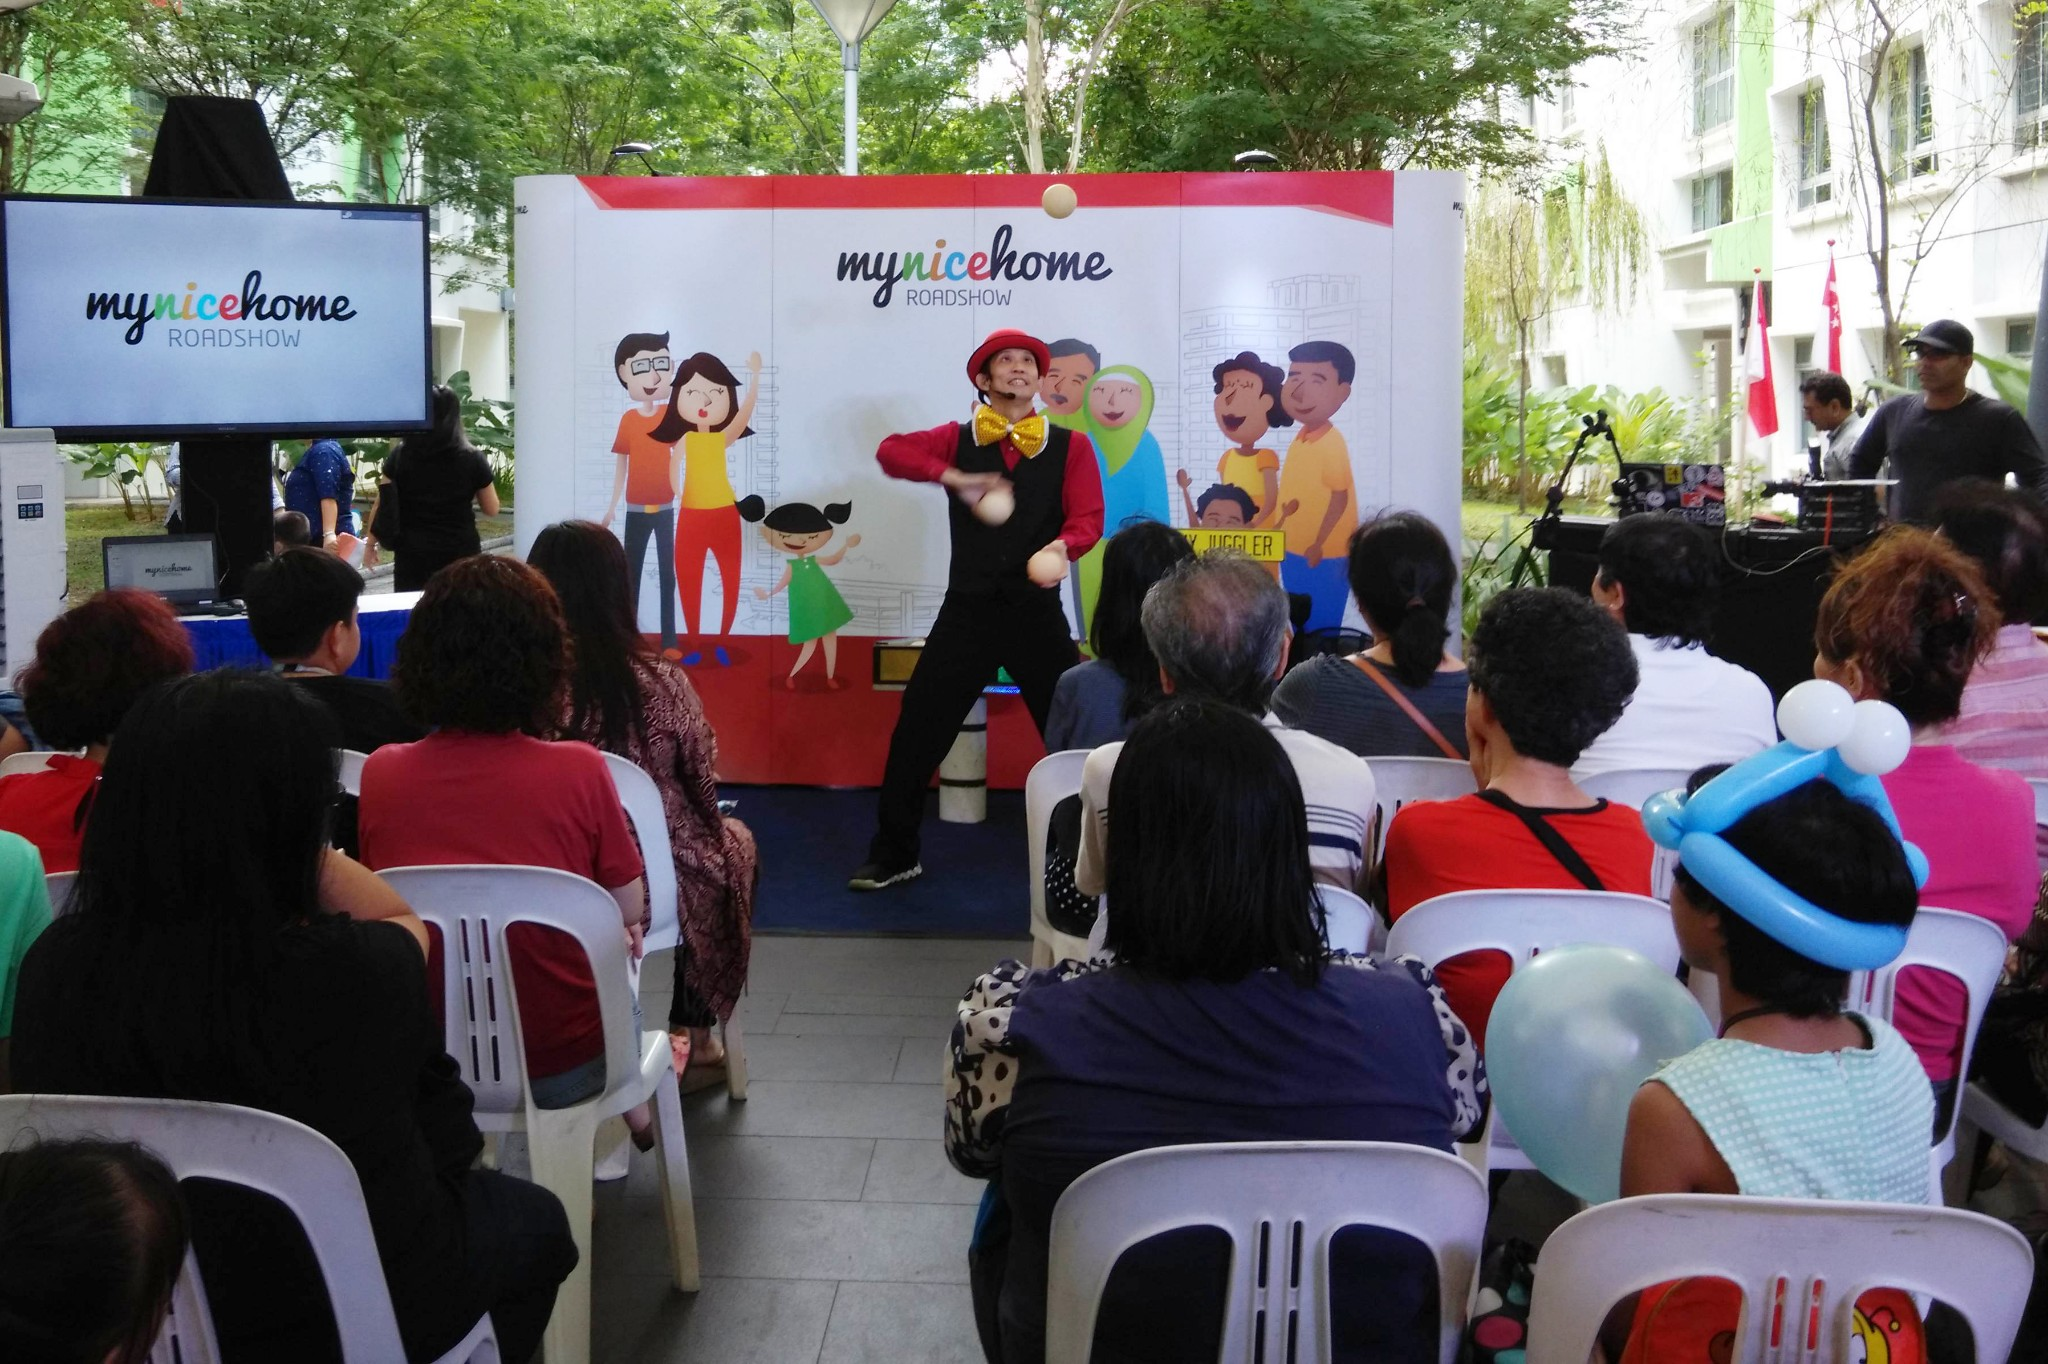 JimmyJuggler performs at roadshow event Singapore